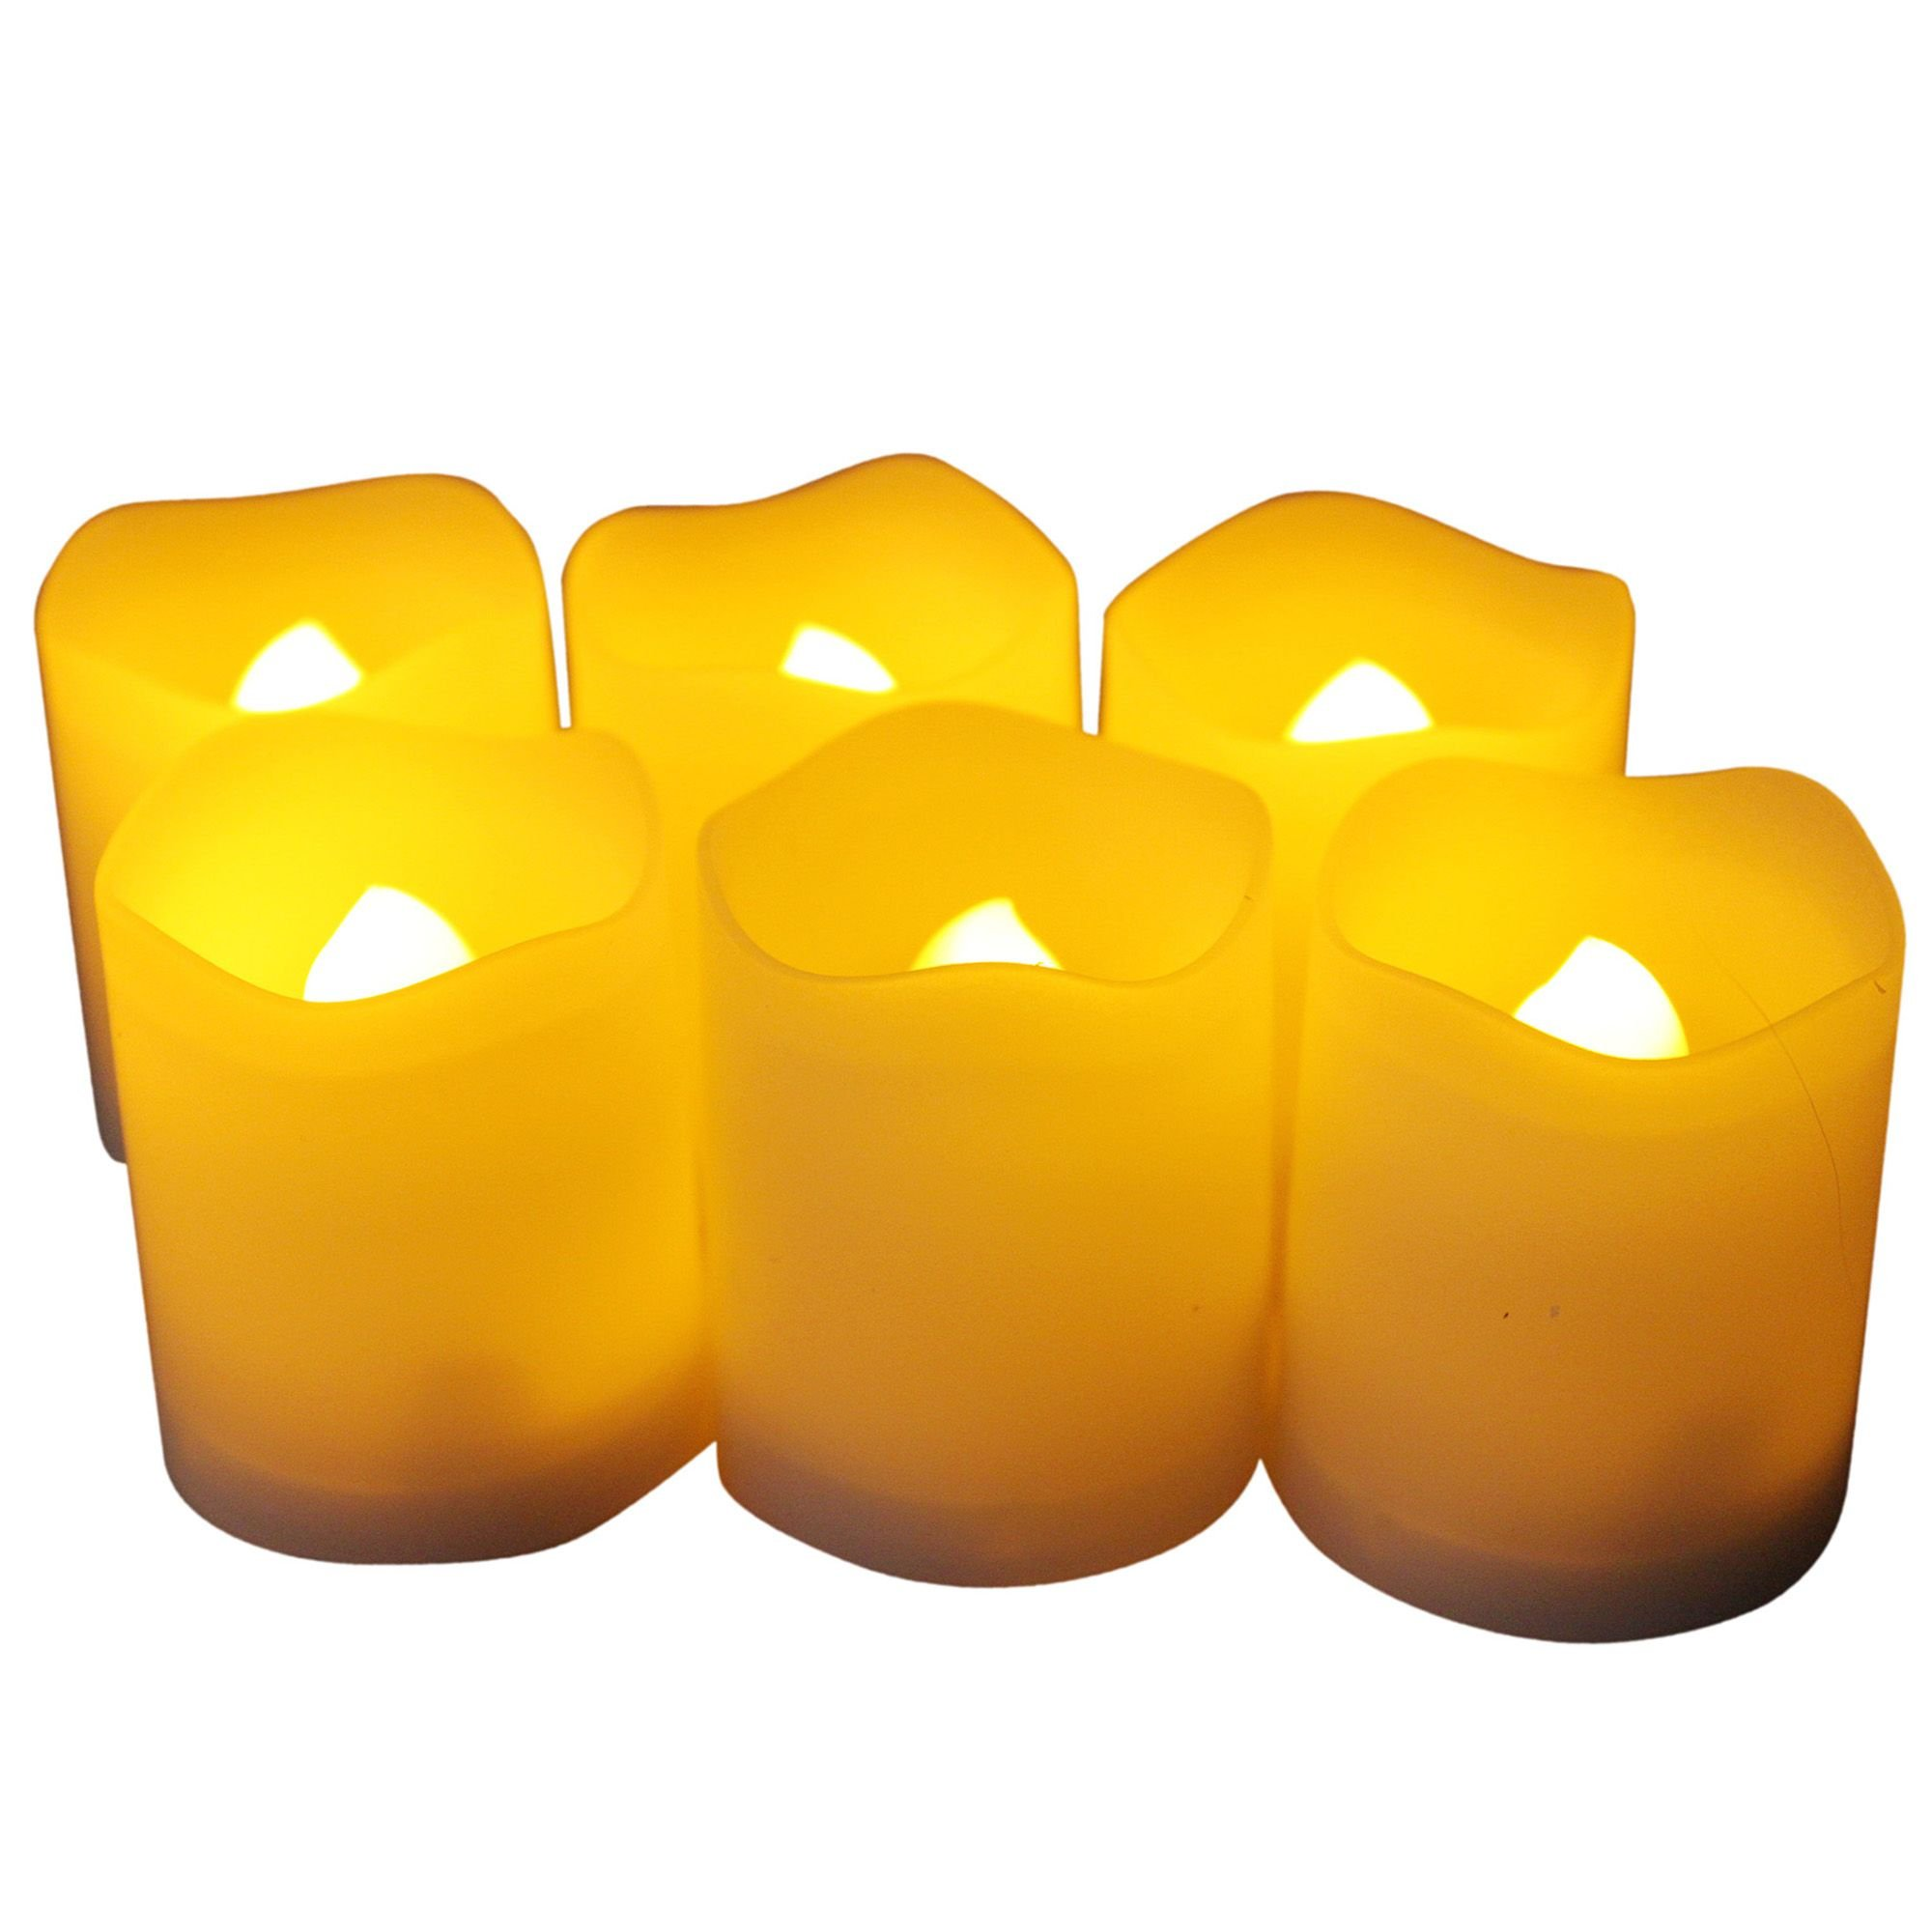 EcoGecko 87111 Indoor/Outdoor Votive Flameless LED Candles with Timer 400-hour Battery Life, Set of 6, 1.38'' x 1.38'' x 1.75''